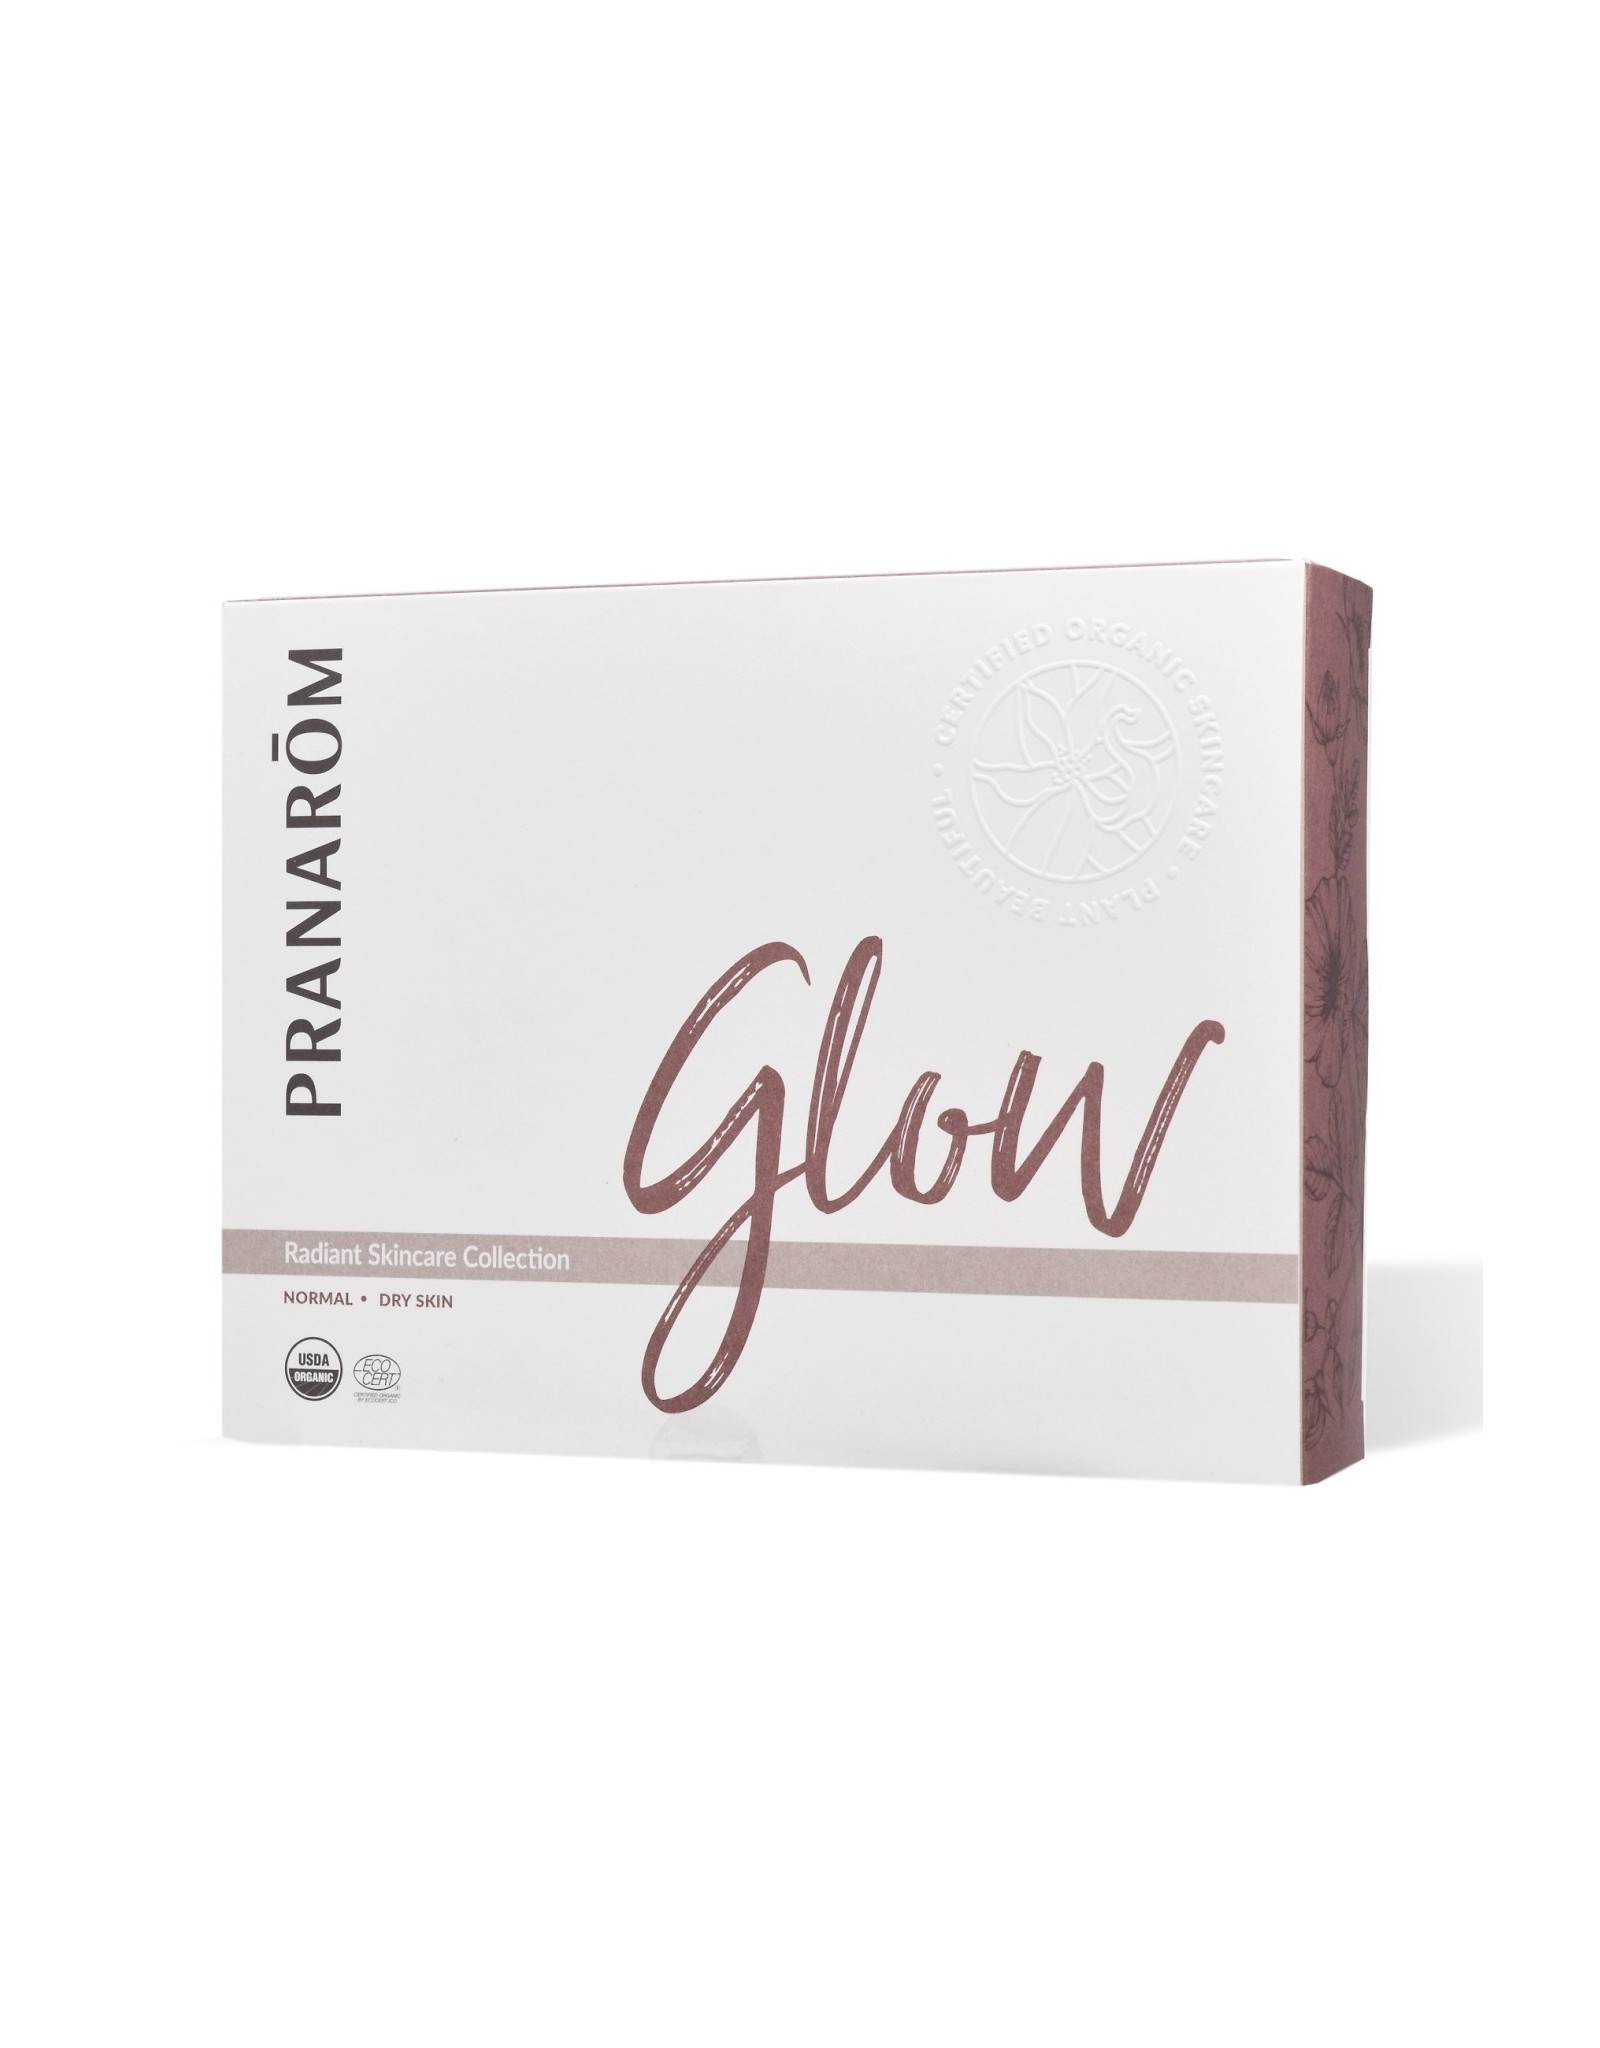 Glow Radiant Skincare Collection